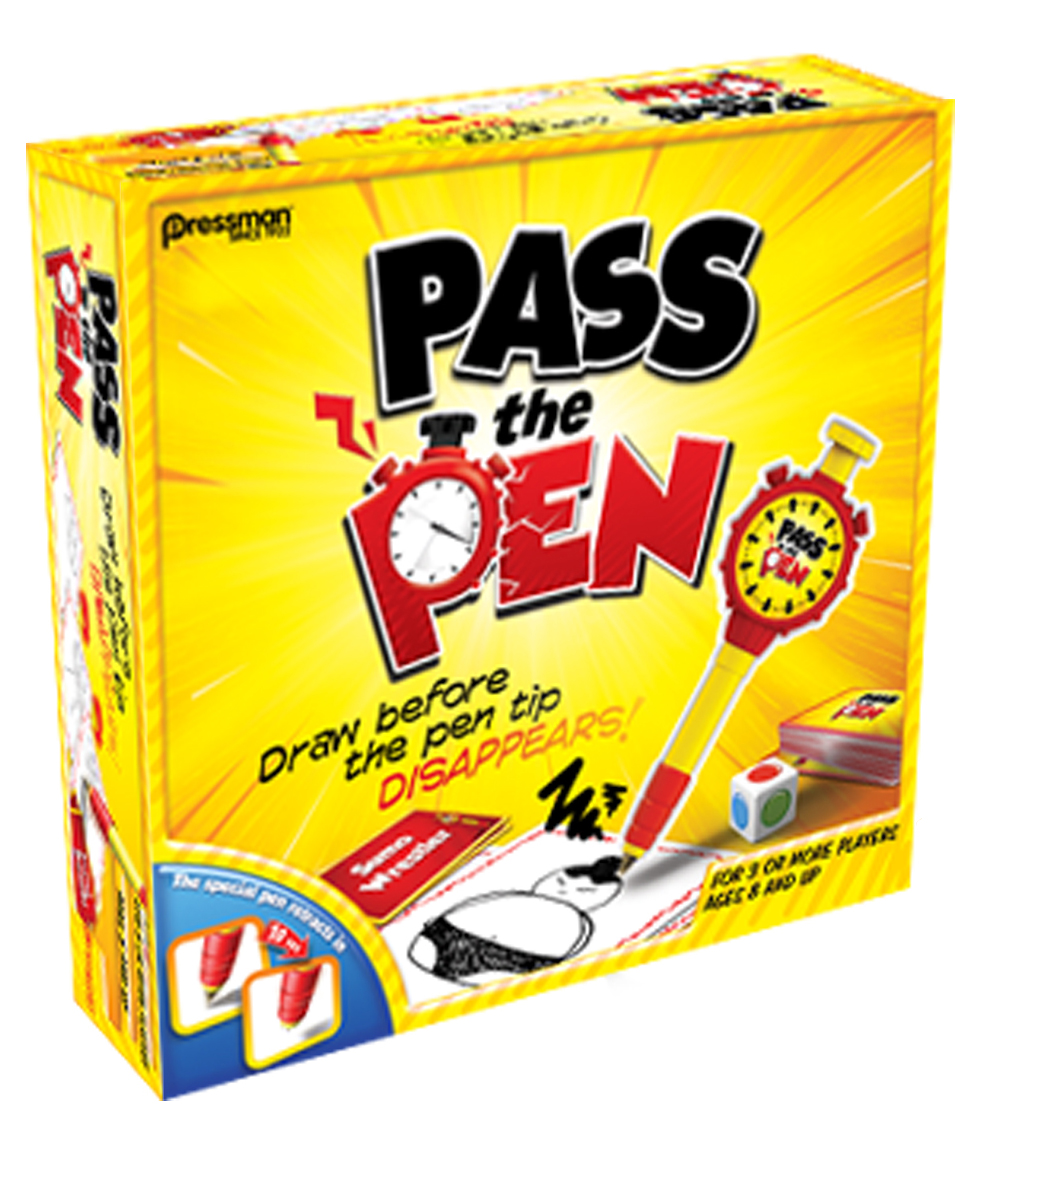 Pressman Toy Pass the Pen Drawing Game Ages 8 and Up by Pressman Toy